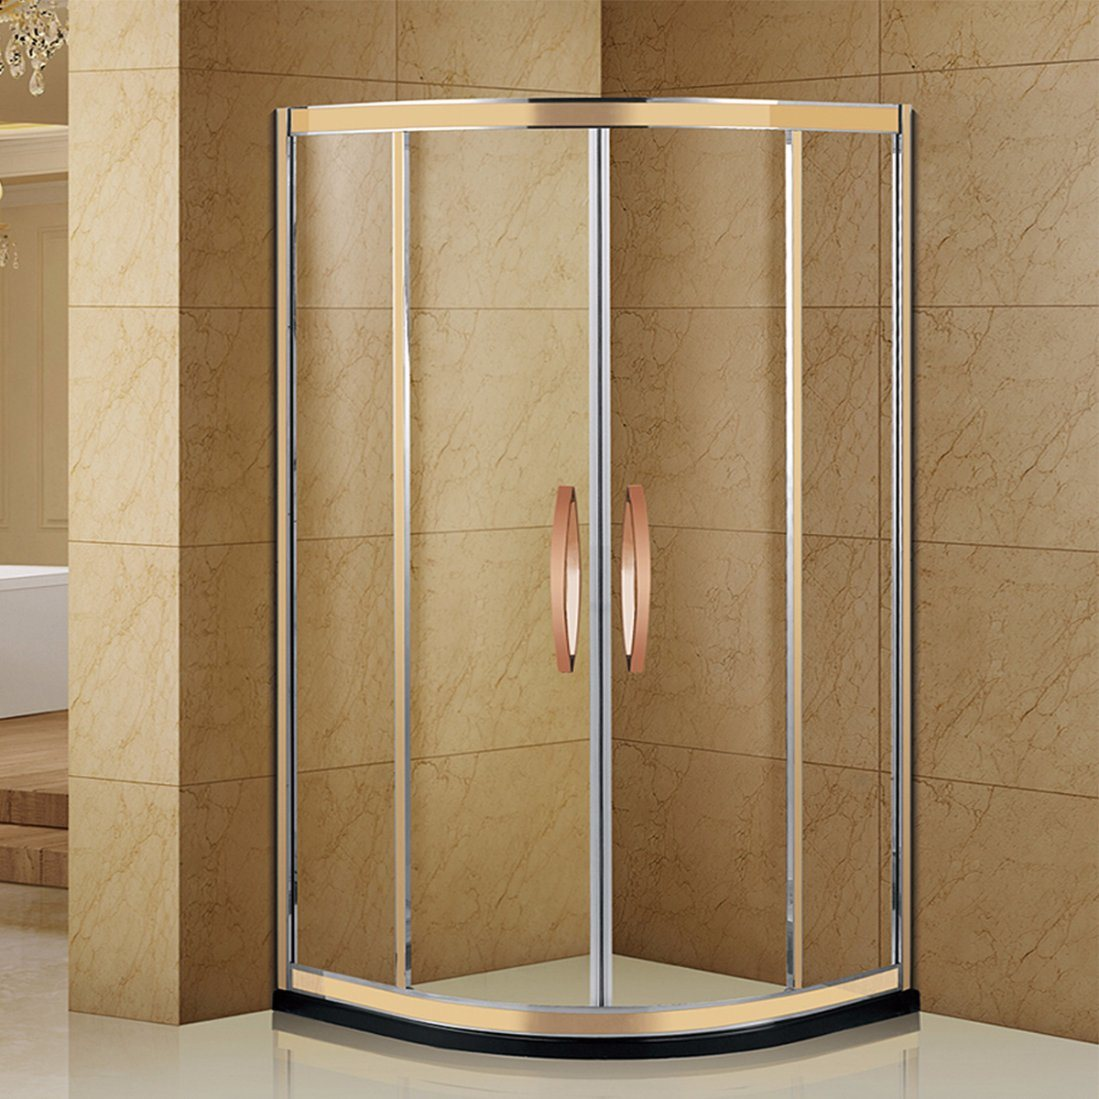 China Simple Shower Room Shower Cubicle - China Shower Room, Shower ...